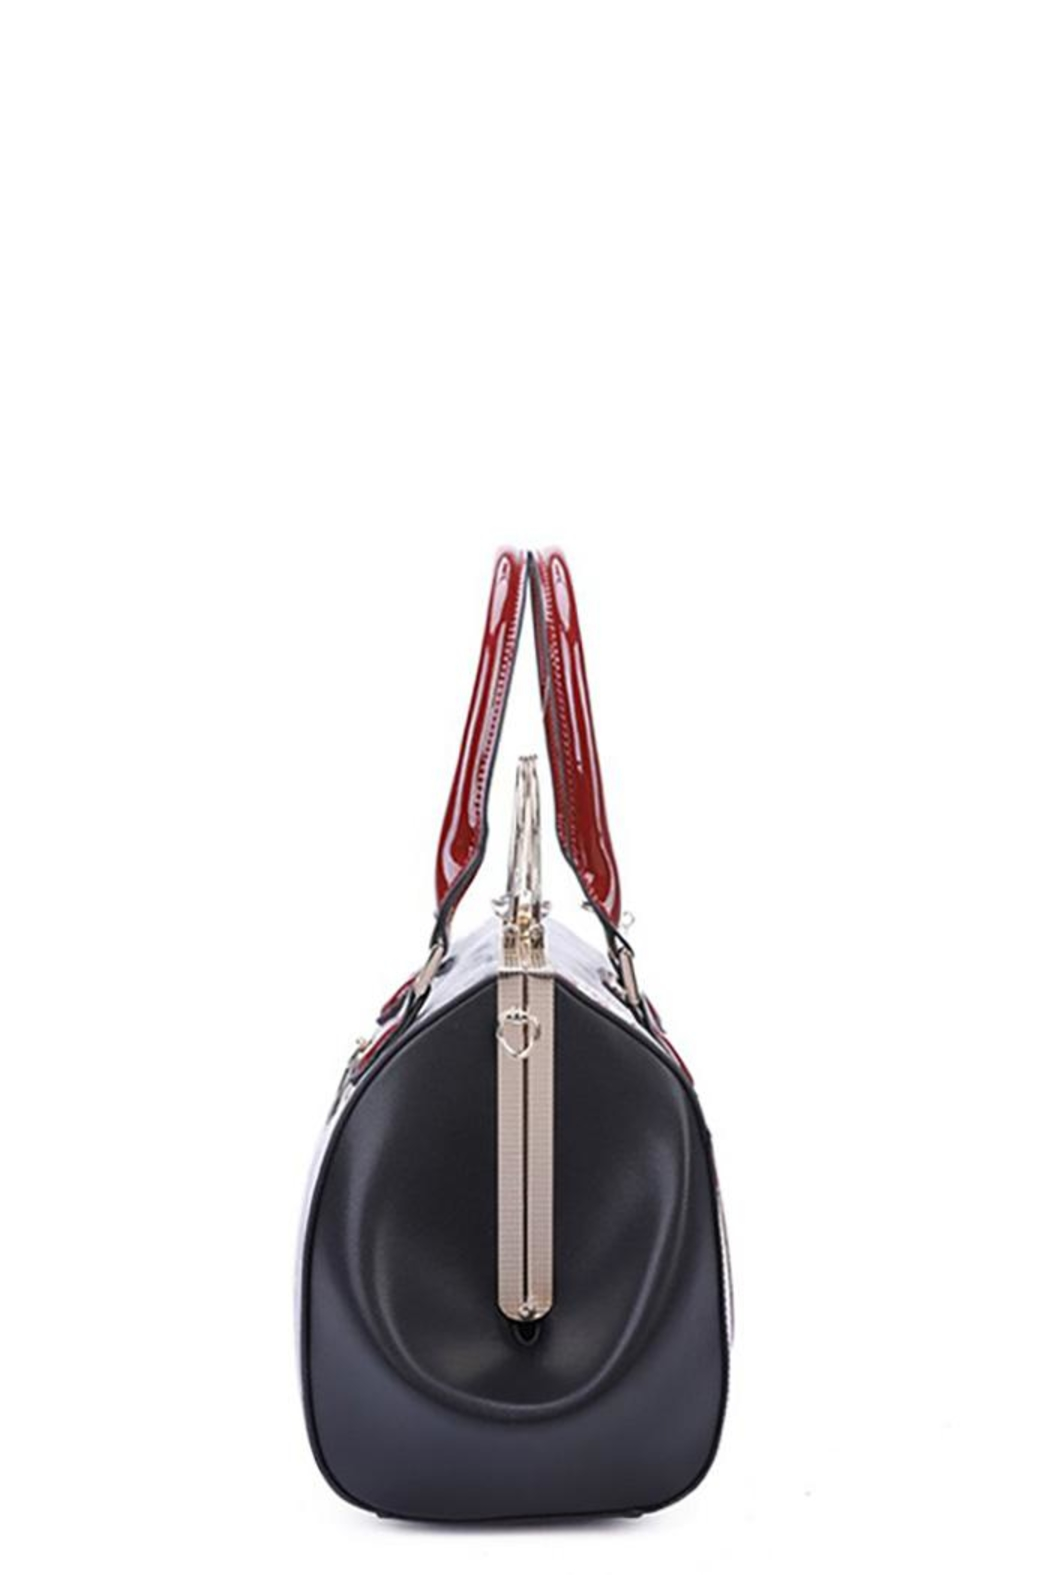 Nicole Lee Frame Collection Double Handle Bag - Side Cropped Image